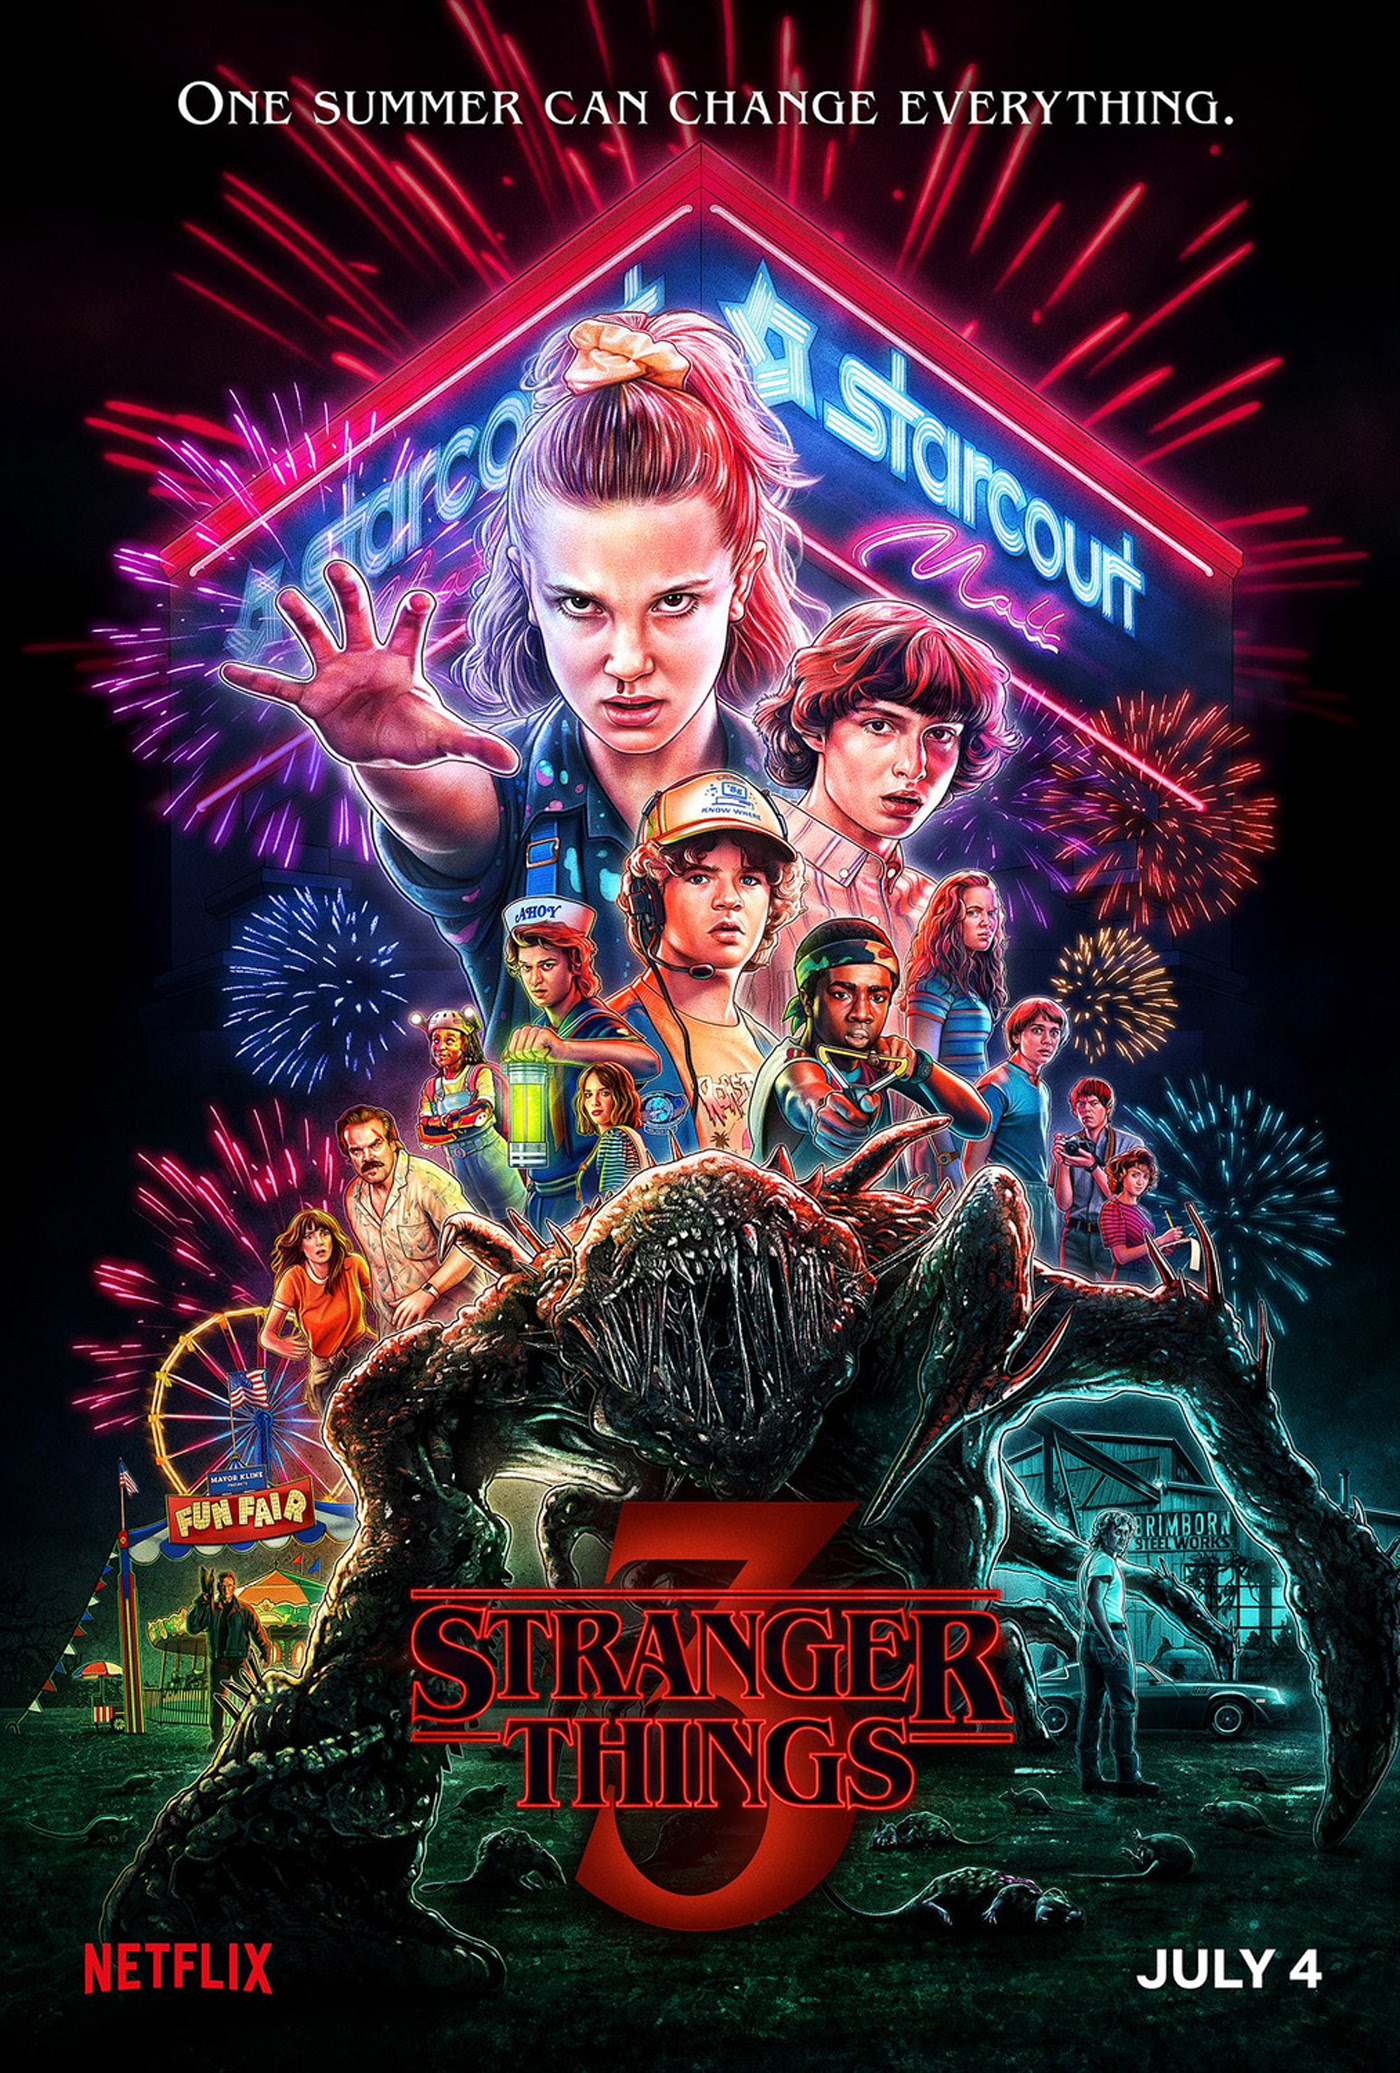 Strangers Things 3: Official Season Poster